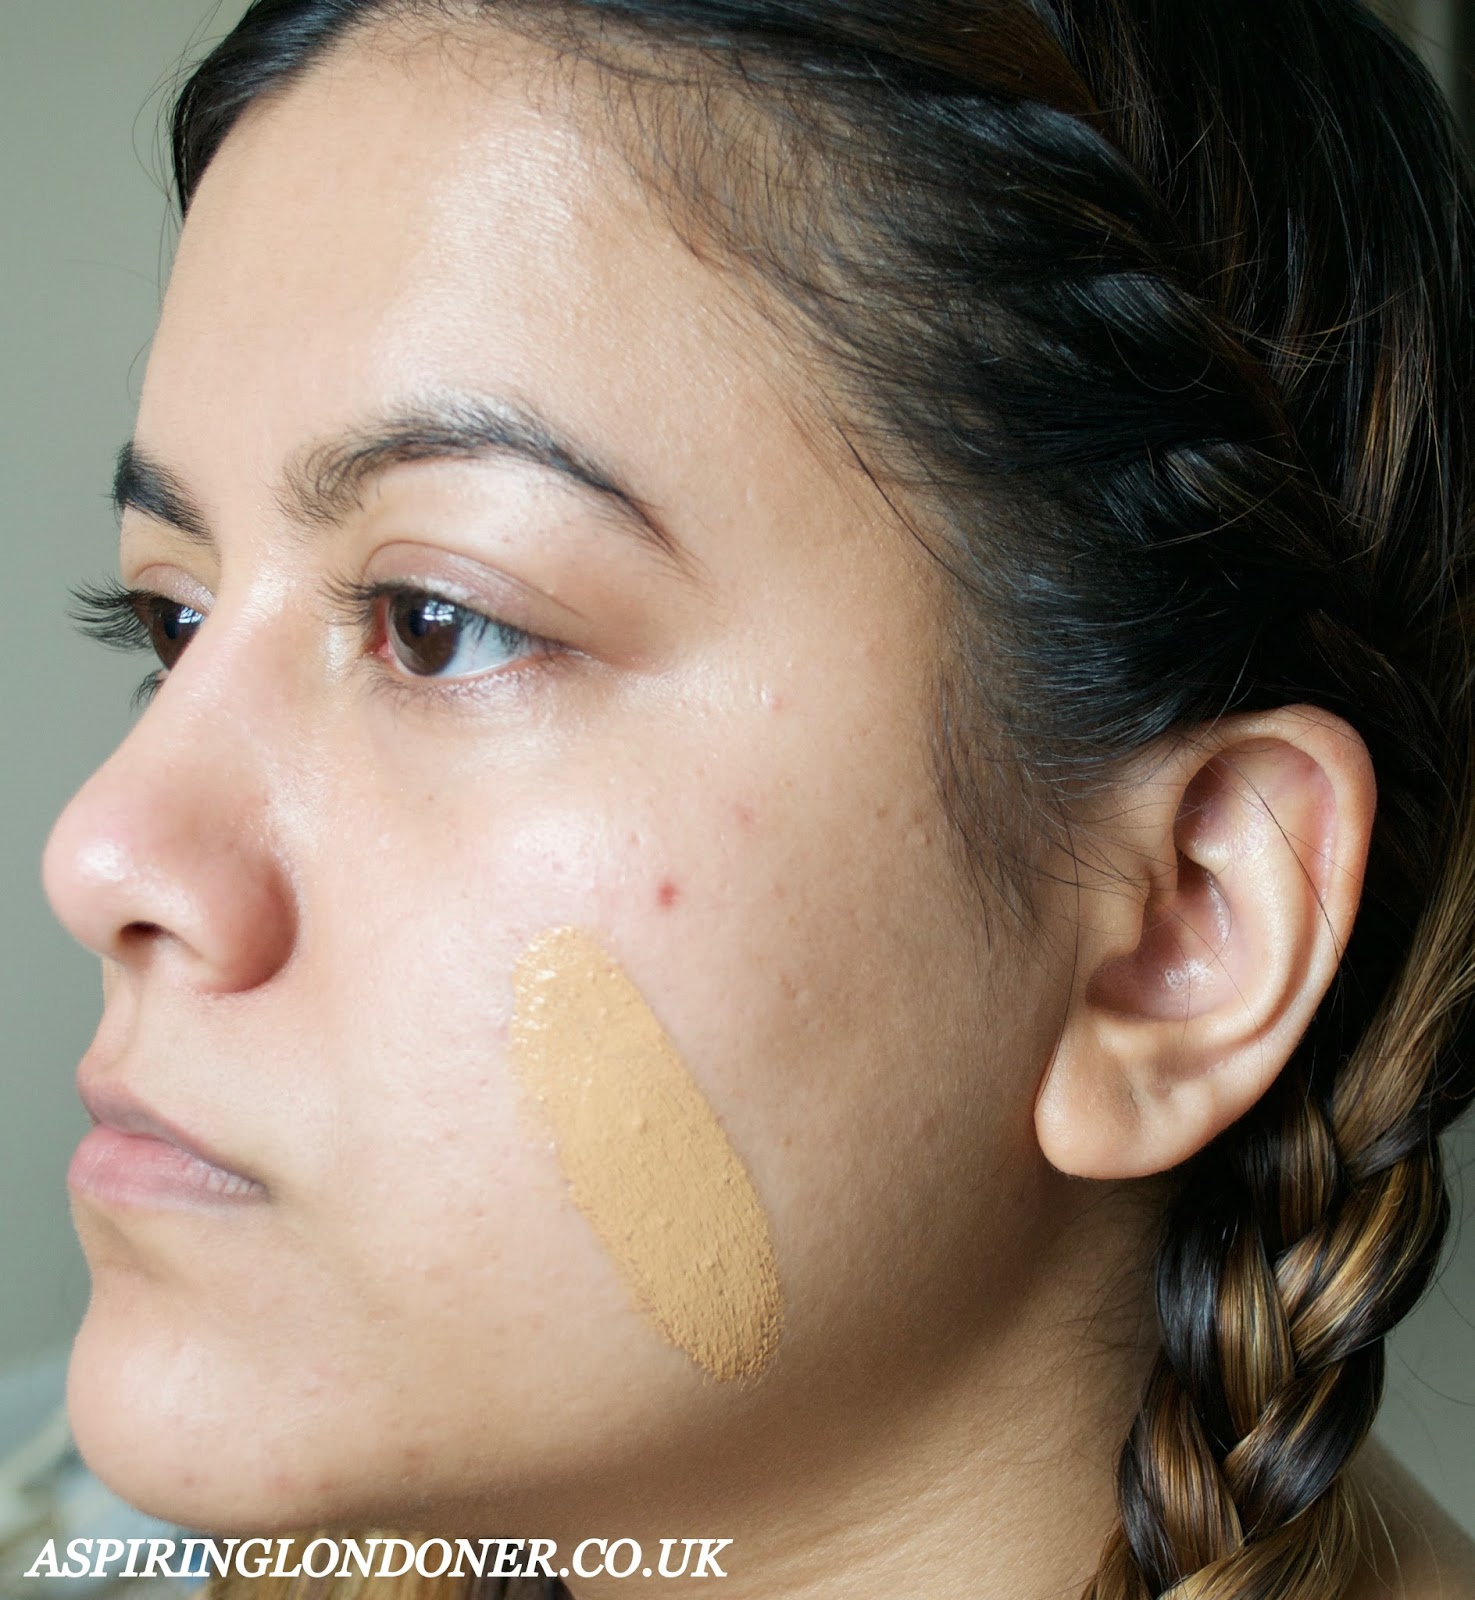 FOUNDATION SHADE MATCH MAXFACTOR MIRACLE MATCH FOUNDATION REVIEW SWATCH - ASPIRING LONDONER